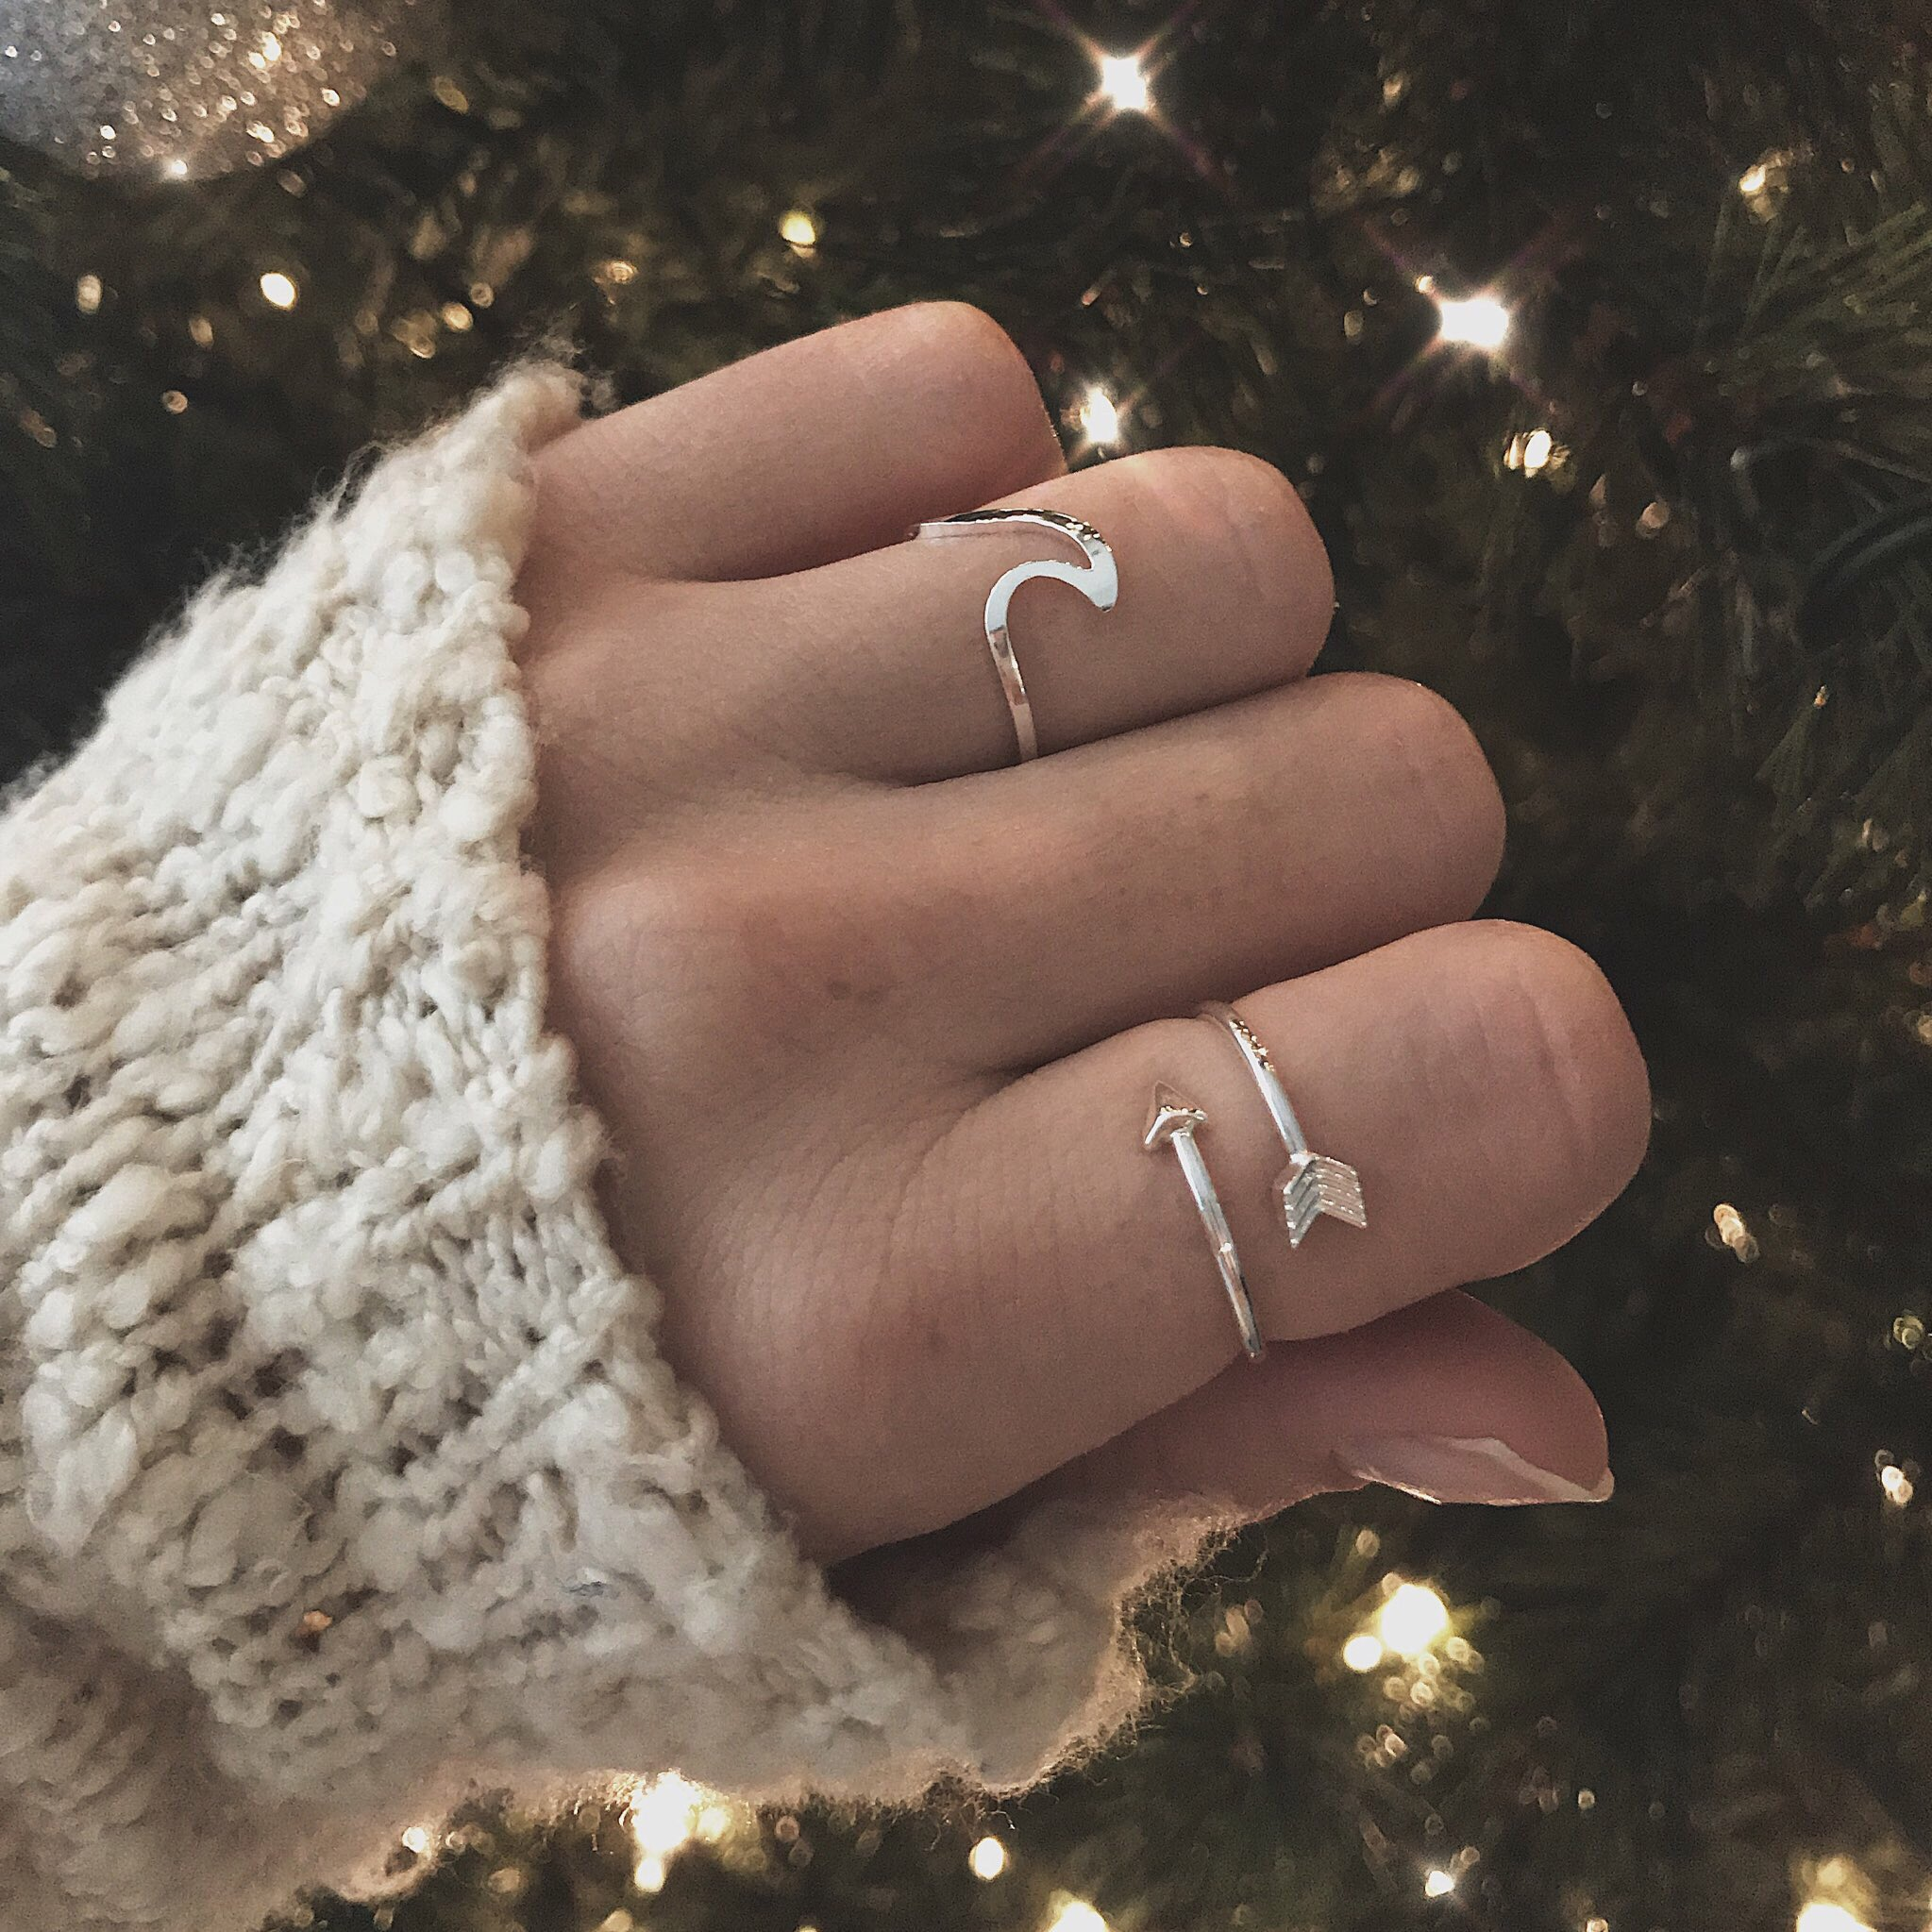 Literally obsessed with this Ring bundle from https://t.co/6ikehUSuU2 https://t.co/mUSeEUzZo3